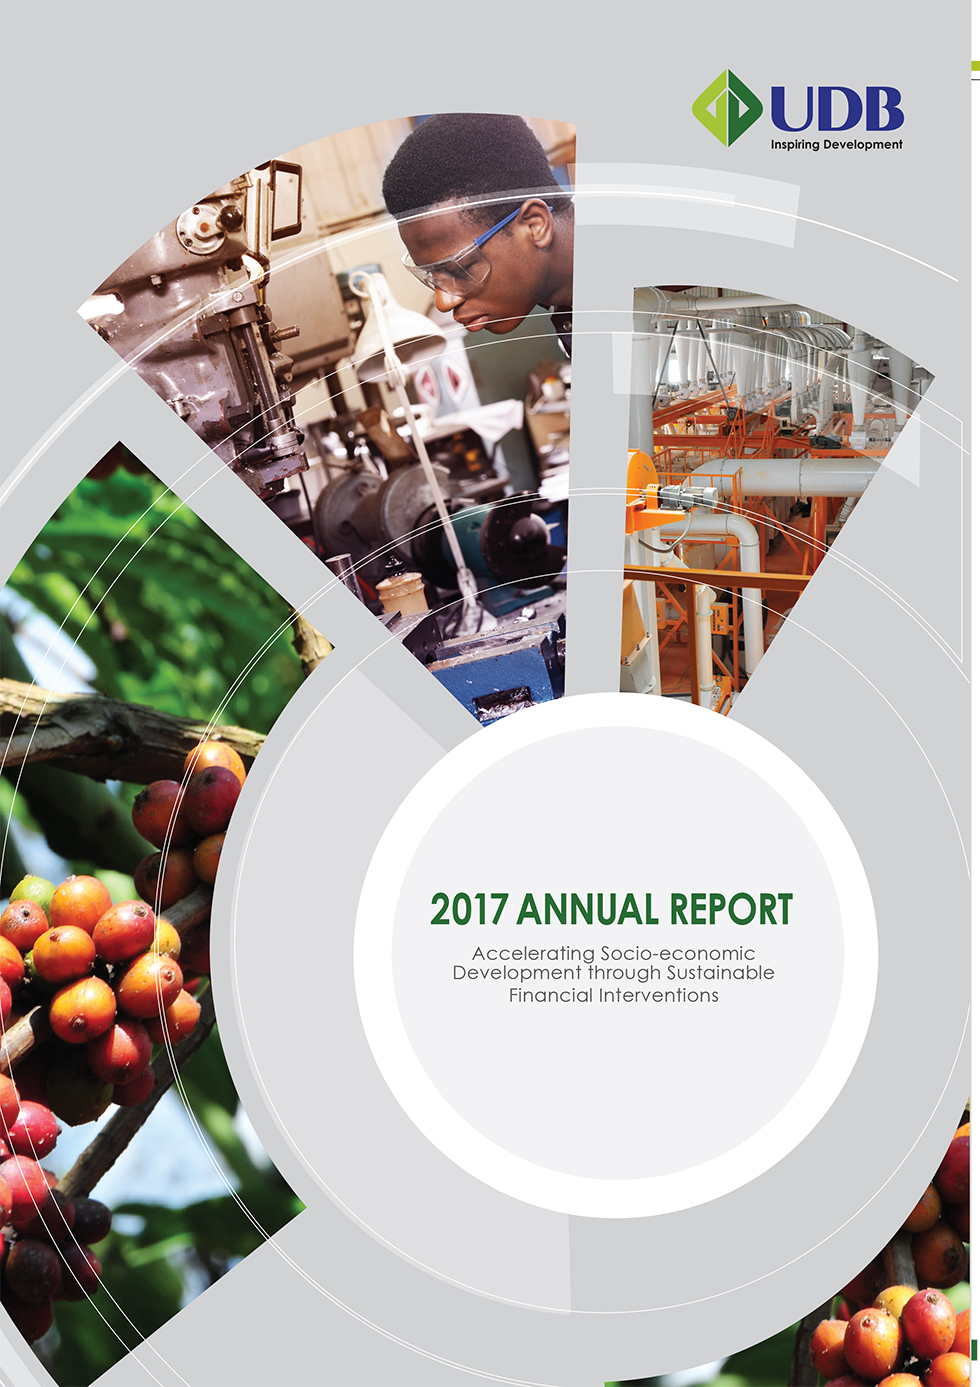 UDB Annual Report 2017